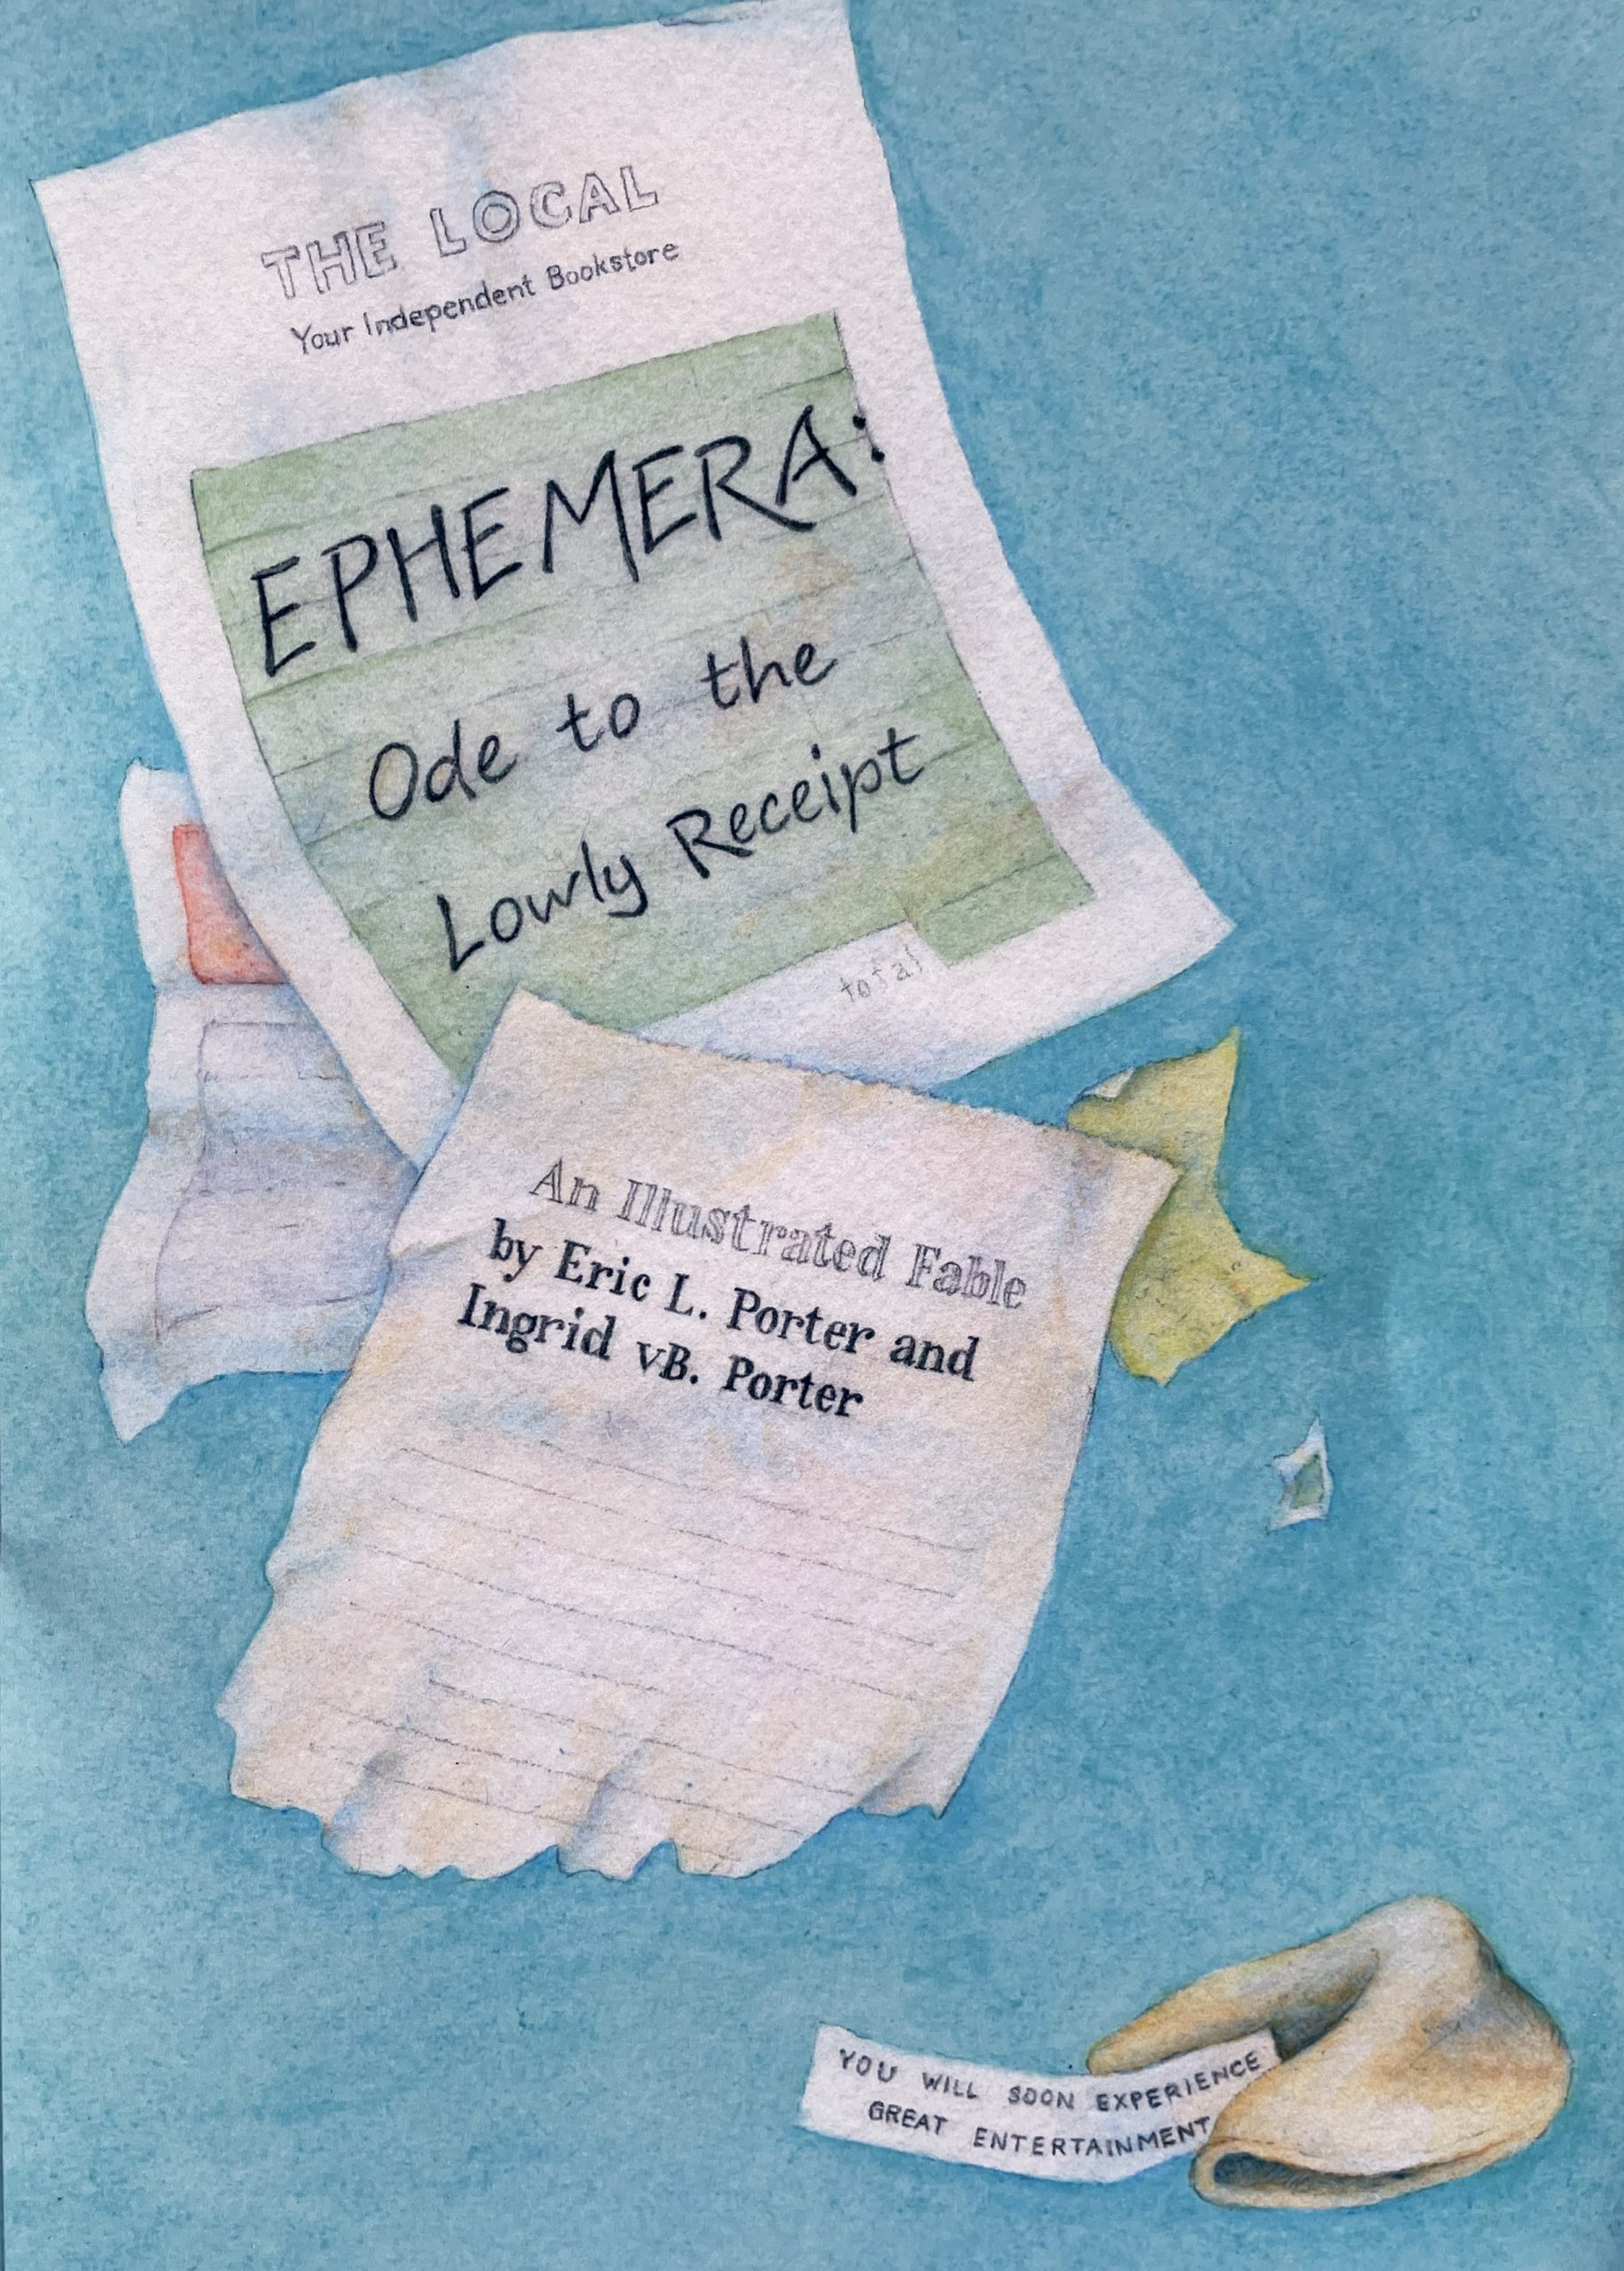 Ephemera: Ode to the Lowly Receipt by Eric L. Porter and Ingrid vB. Porter